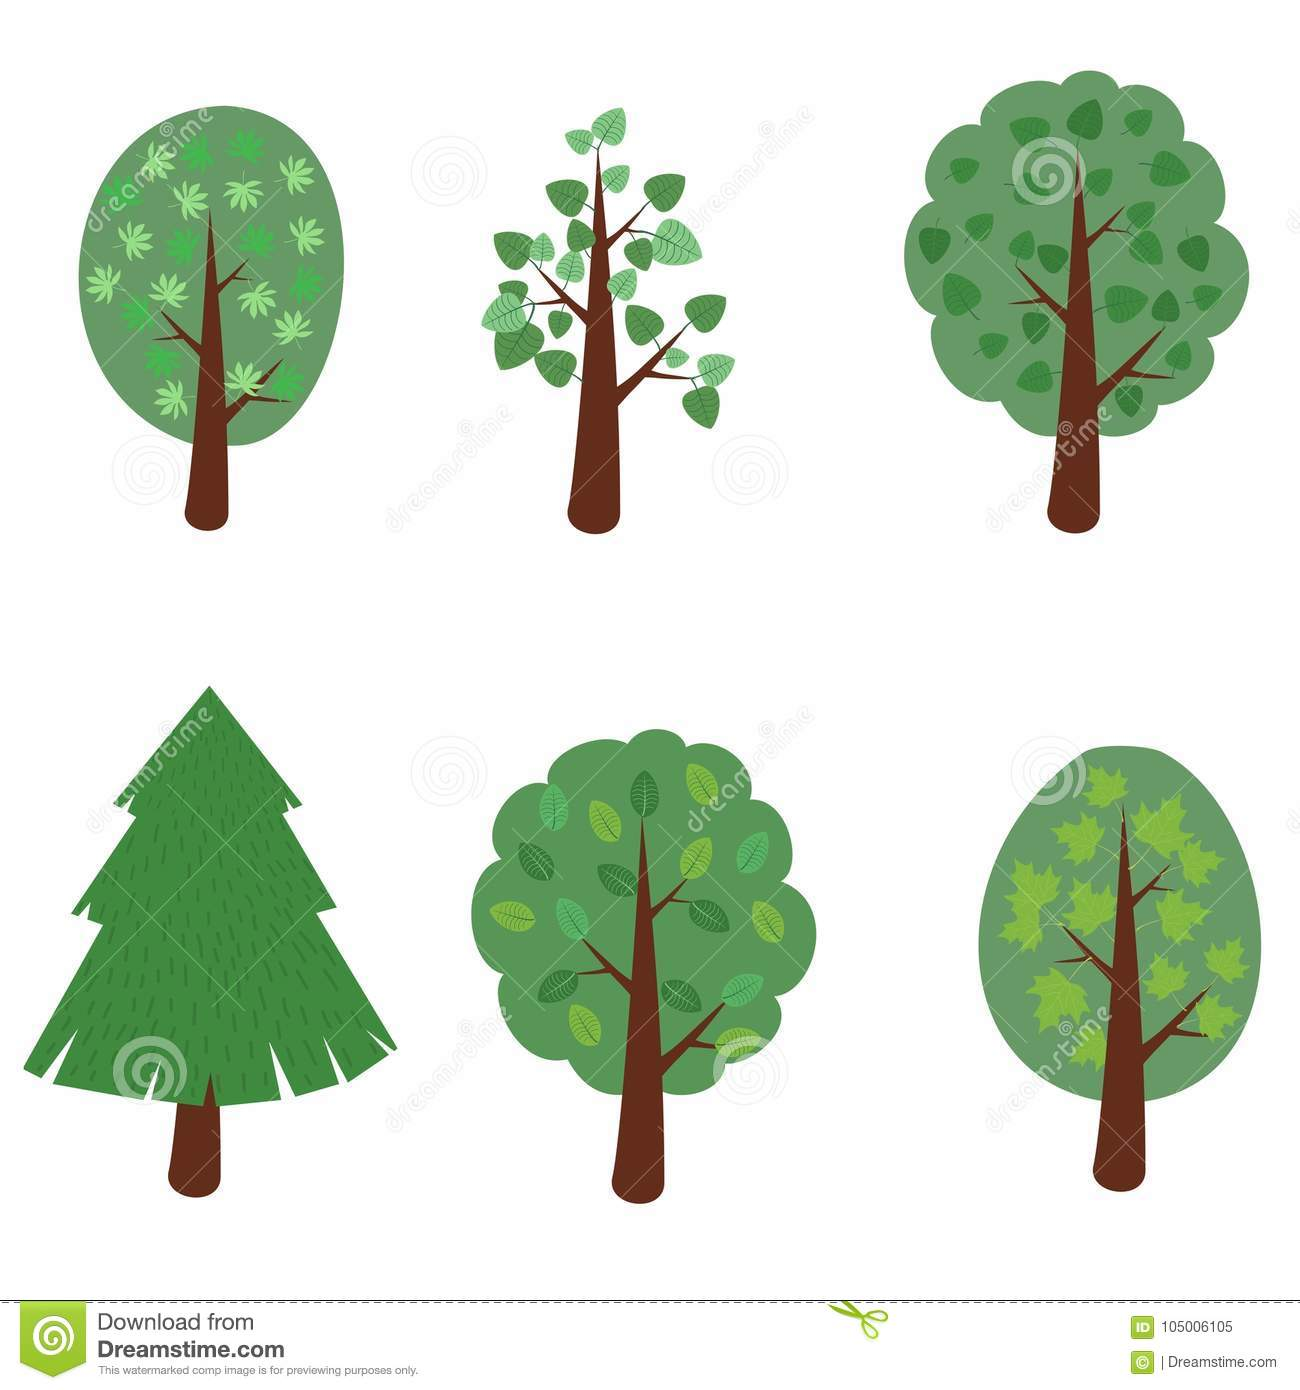 Set Of Simple Cartoon Tree Vector Illustration Stock Vector Illustration Of Abstract Green 105006105 Download 190,000+ royalty free tree cartoon vector images. https www dreamstime com set simple cartoon deciduous trees conifers vector illustration set simple cartoon tree vector illustration image105006105